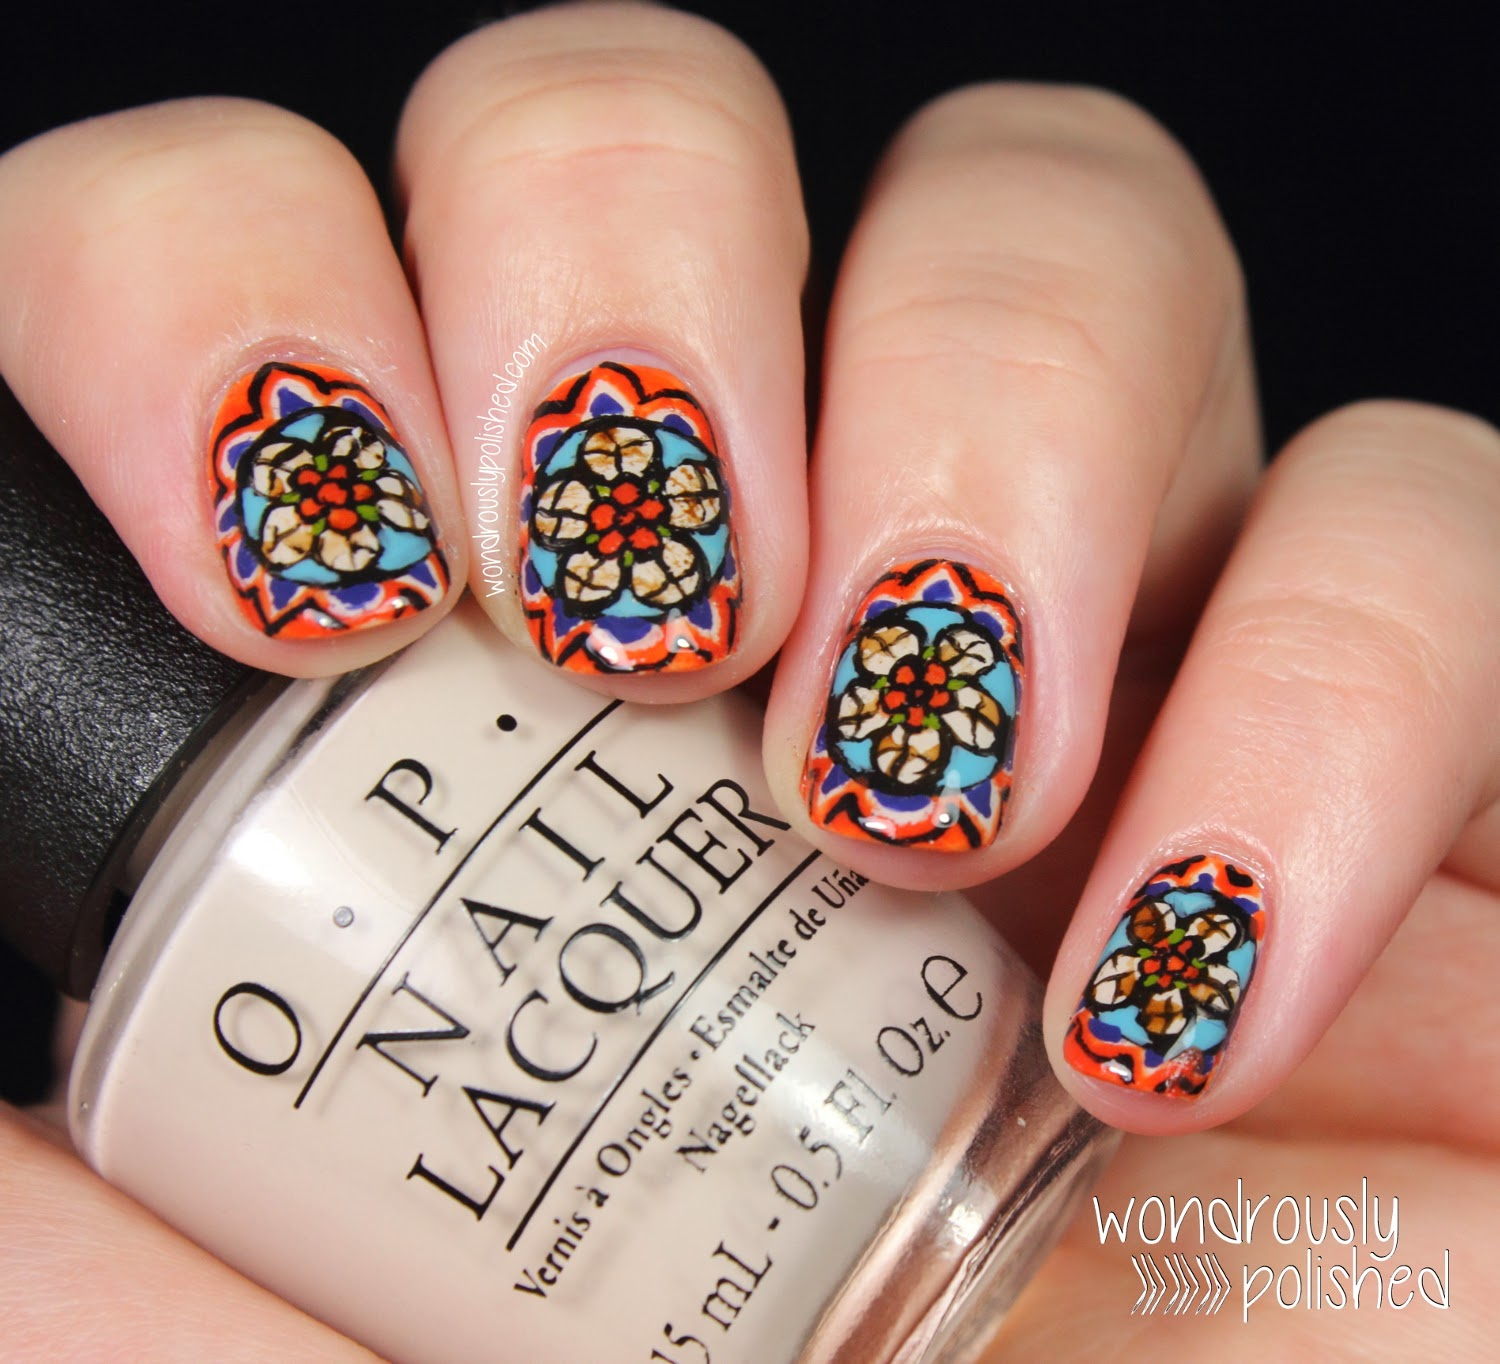 Stained Glass Nail Art: Wondrously Polished: 31 Day Nail Art Challenge